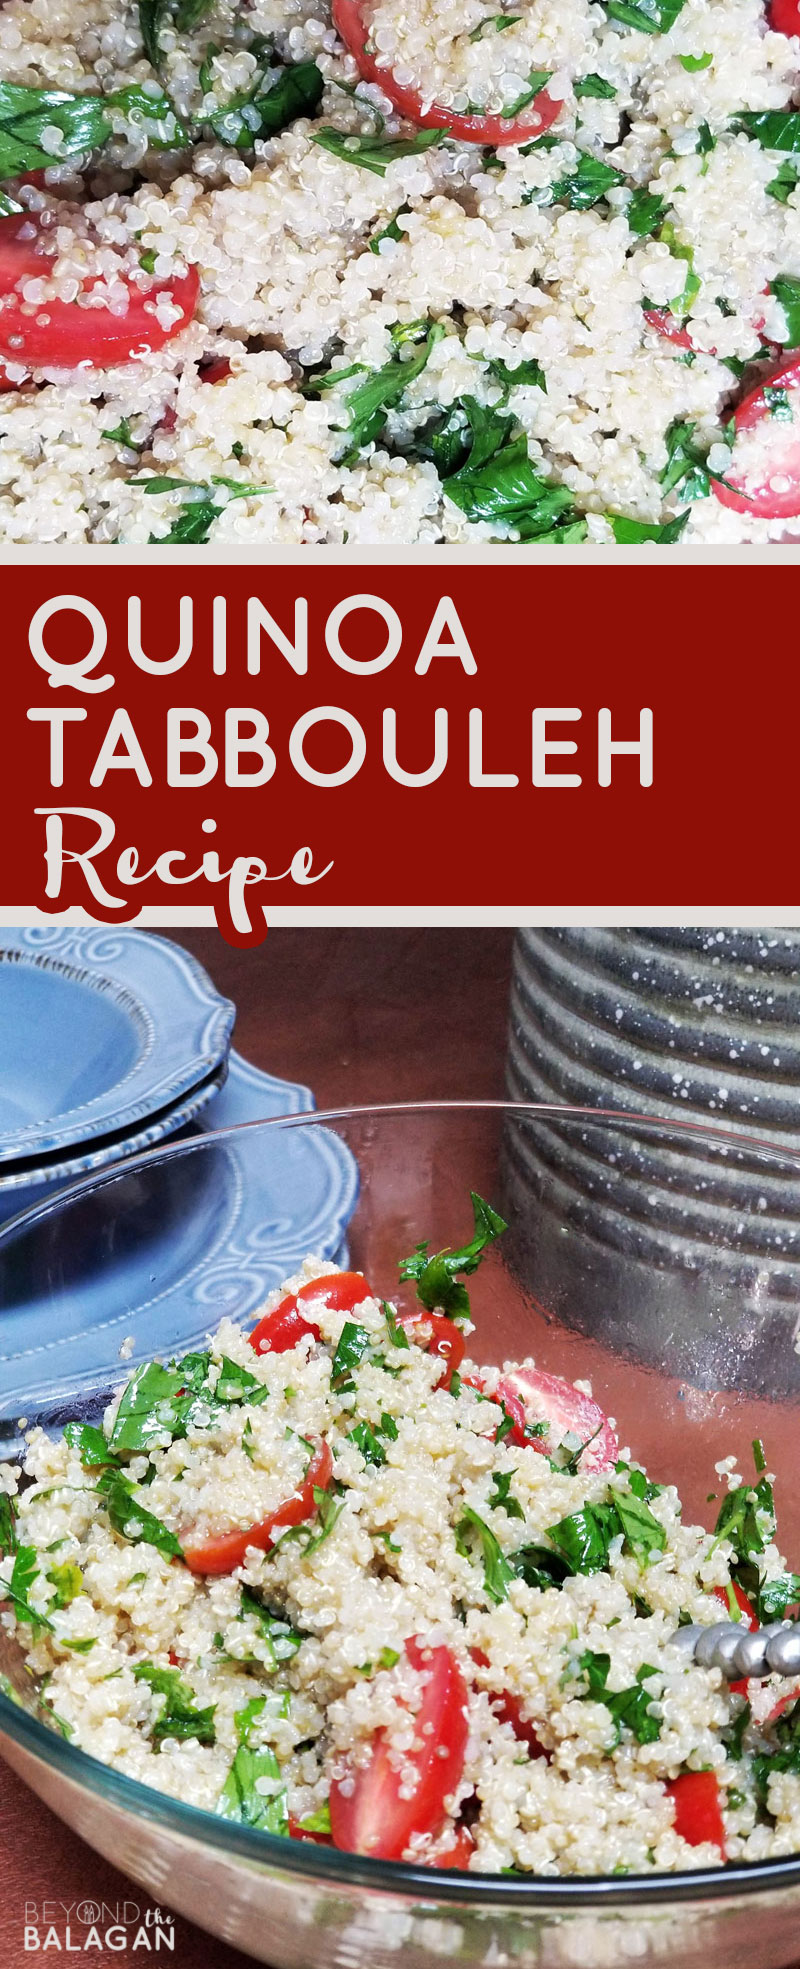 Looking for a delicious healthy salad recipe that's also filling? Try this yummy quinoa tabbouleh salad recipe - a middle eastern dish that's deliciously herby and will help you use up your parsley from your garden. #parsley #tabbouleh #salad